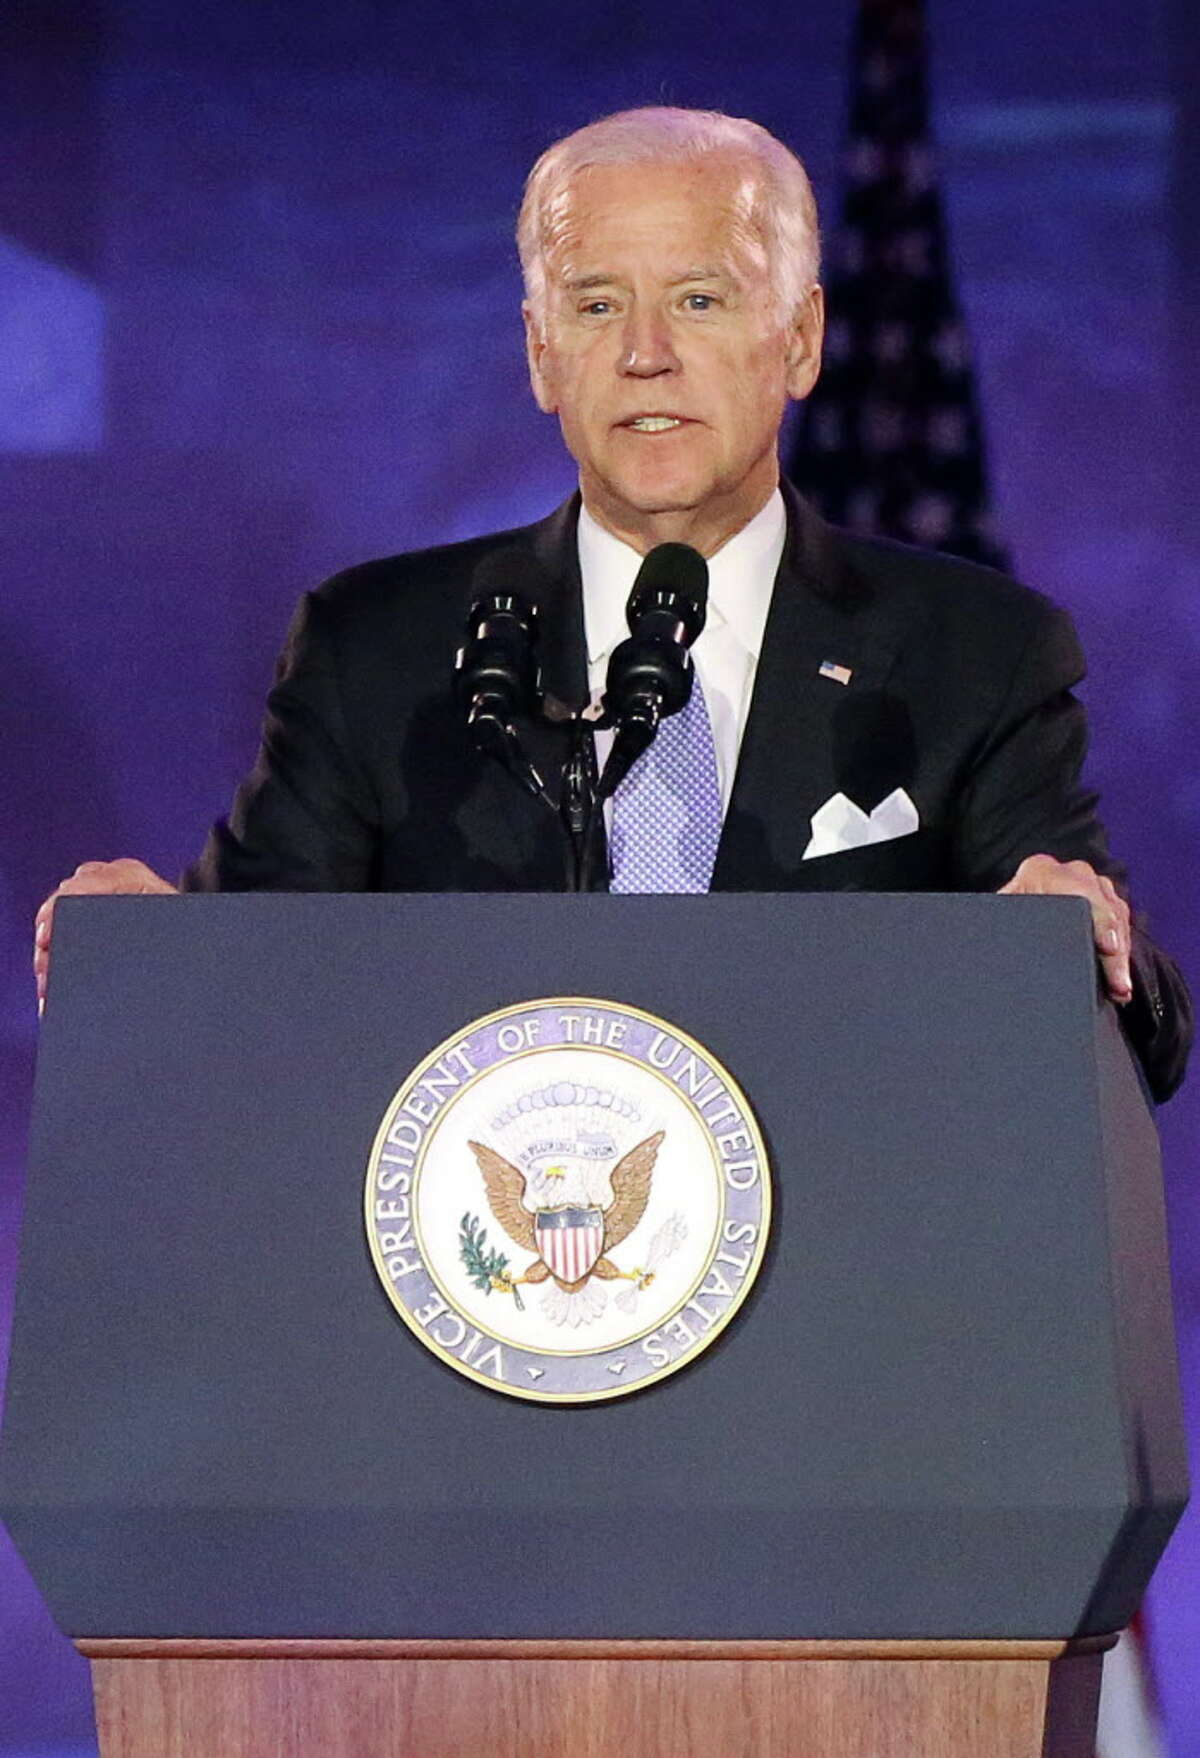 U.S. Vice President Joe Biden, leader of the White House Cancer Moonshot, which aligns with University of Texas MD Anderson?•s Moon Shots Programª, gives a speech to celebrate the 75th Anniversary of MD Anderson Cancer Center Thursday, Nov. 10, 2016, in Houston. Biden's son, Beau Biden, was admitted and treated at MD Anderson for brain cancer in 2013.